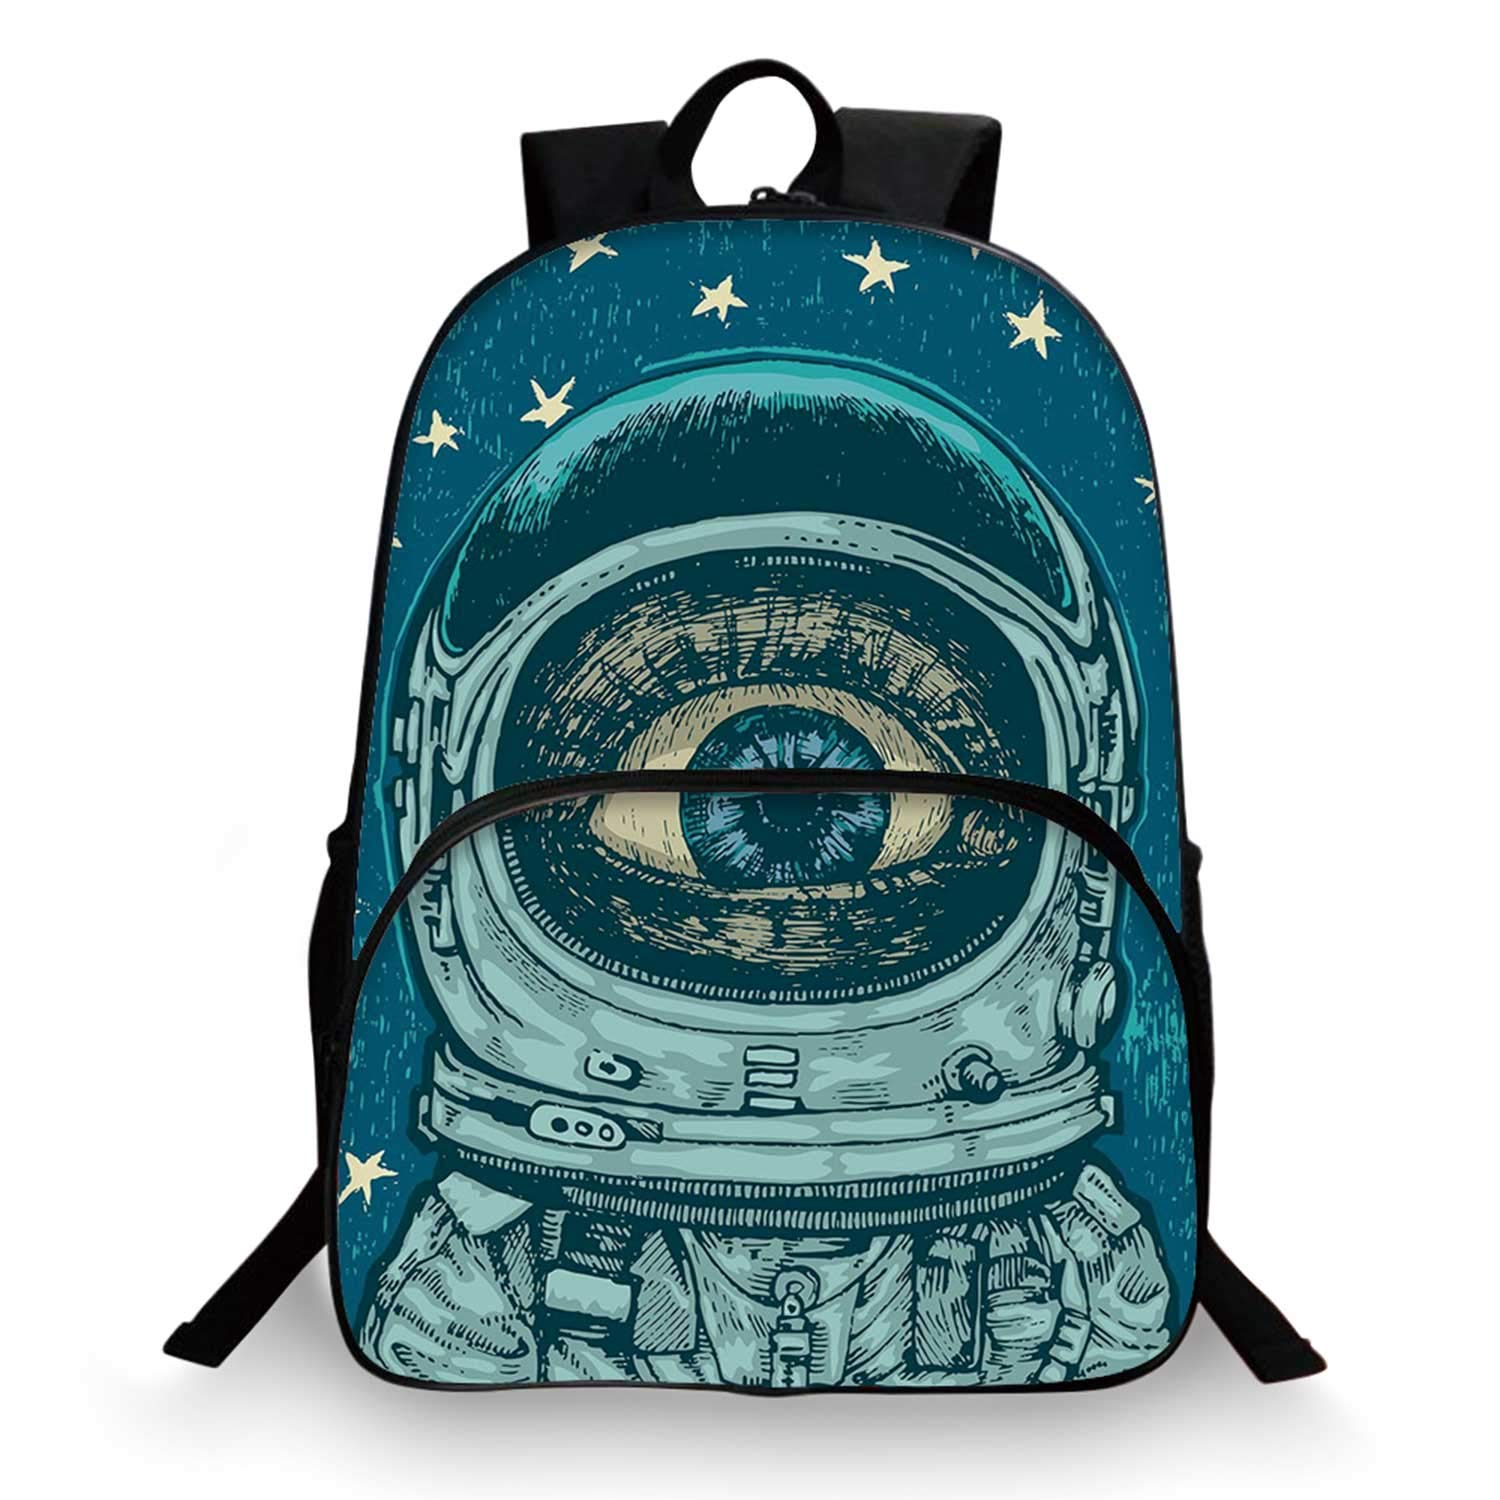 Astronaut Various Schoolbag,Amazed Astronaut Giant Surprised Eye Stars Amazing Wonders of the Universe Decorative for student,11''Lx6''Wx15''H by C COABALLA